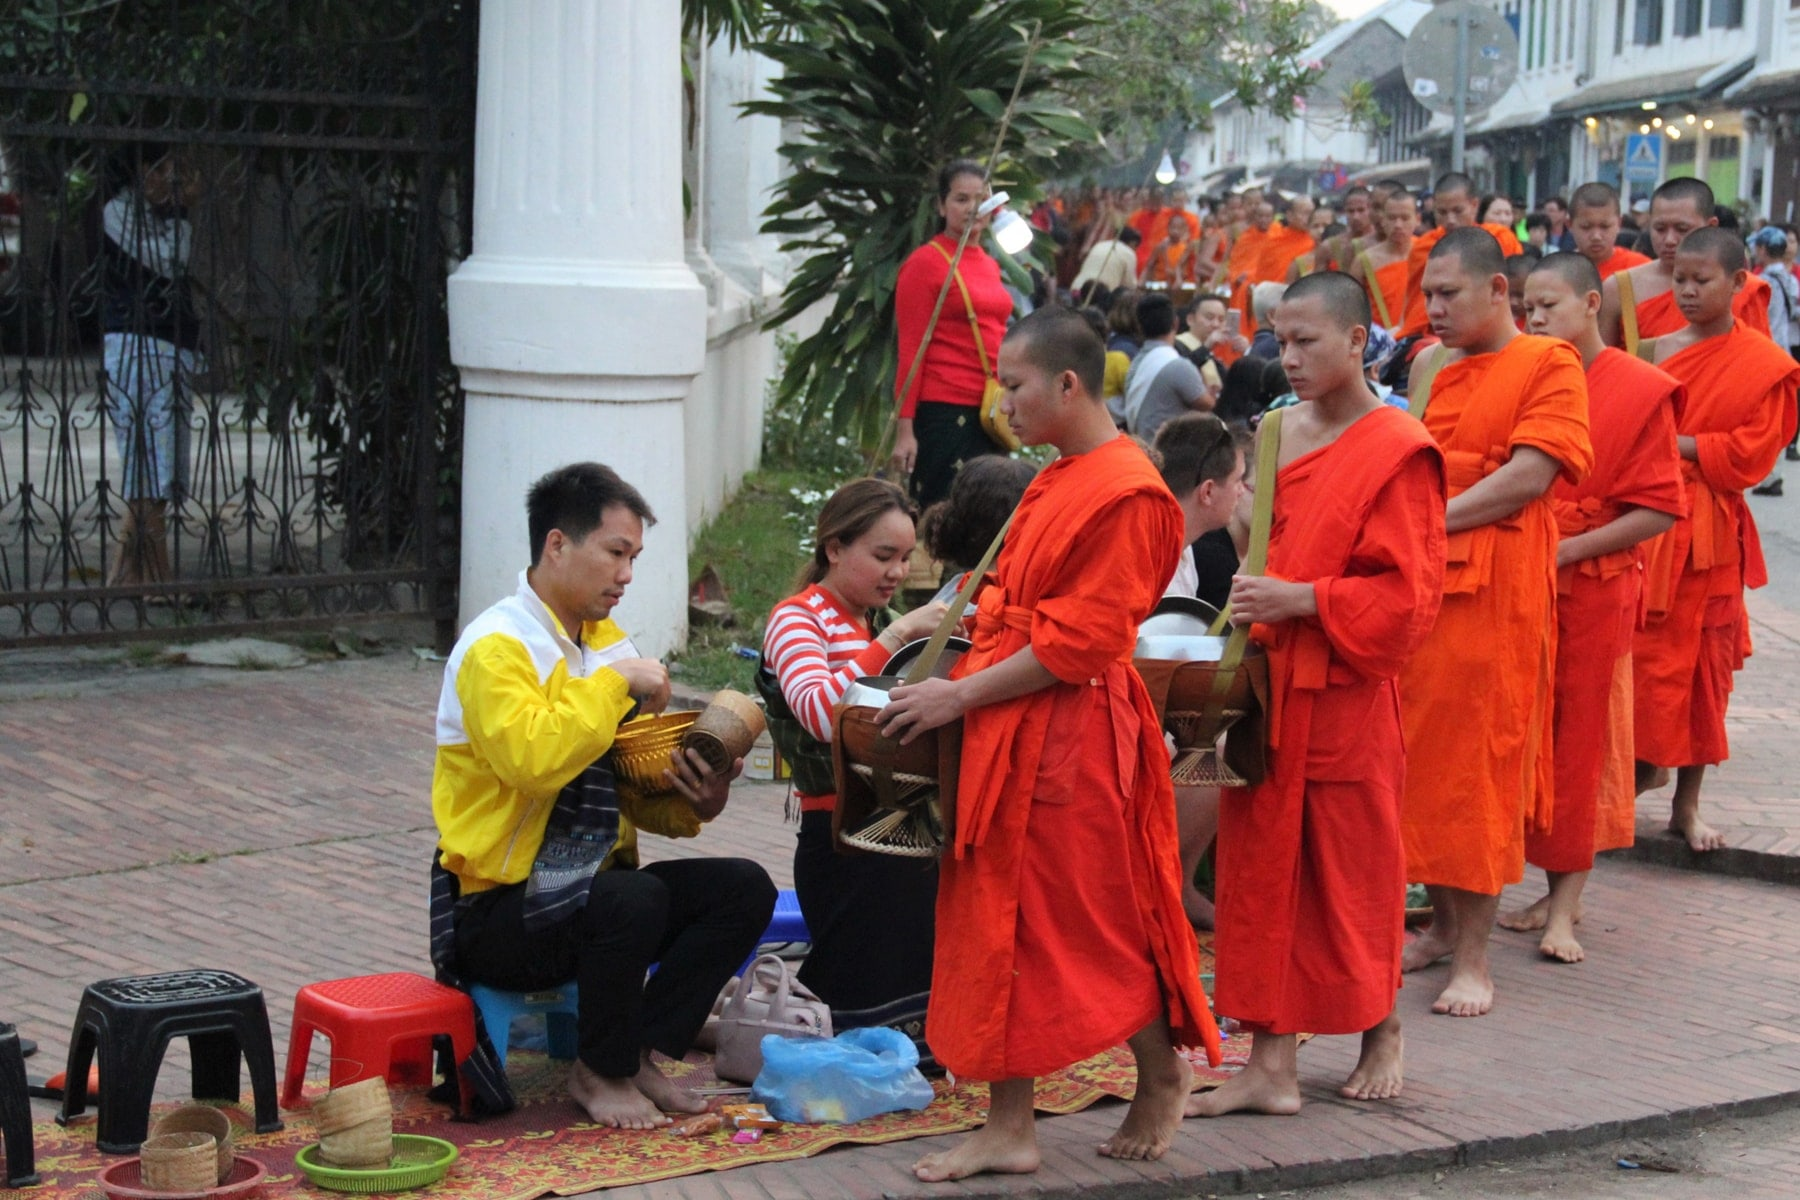 Couple donating during alms giving ceremony in Luang Prabang